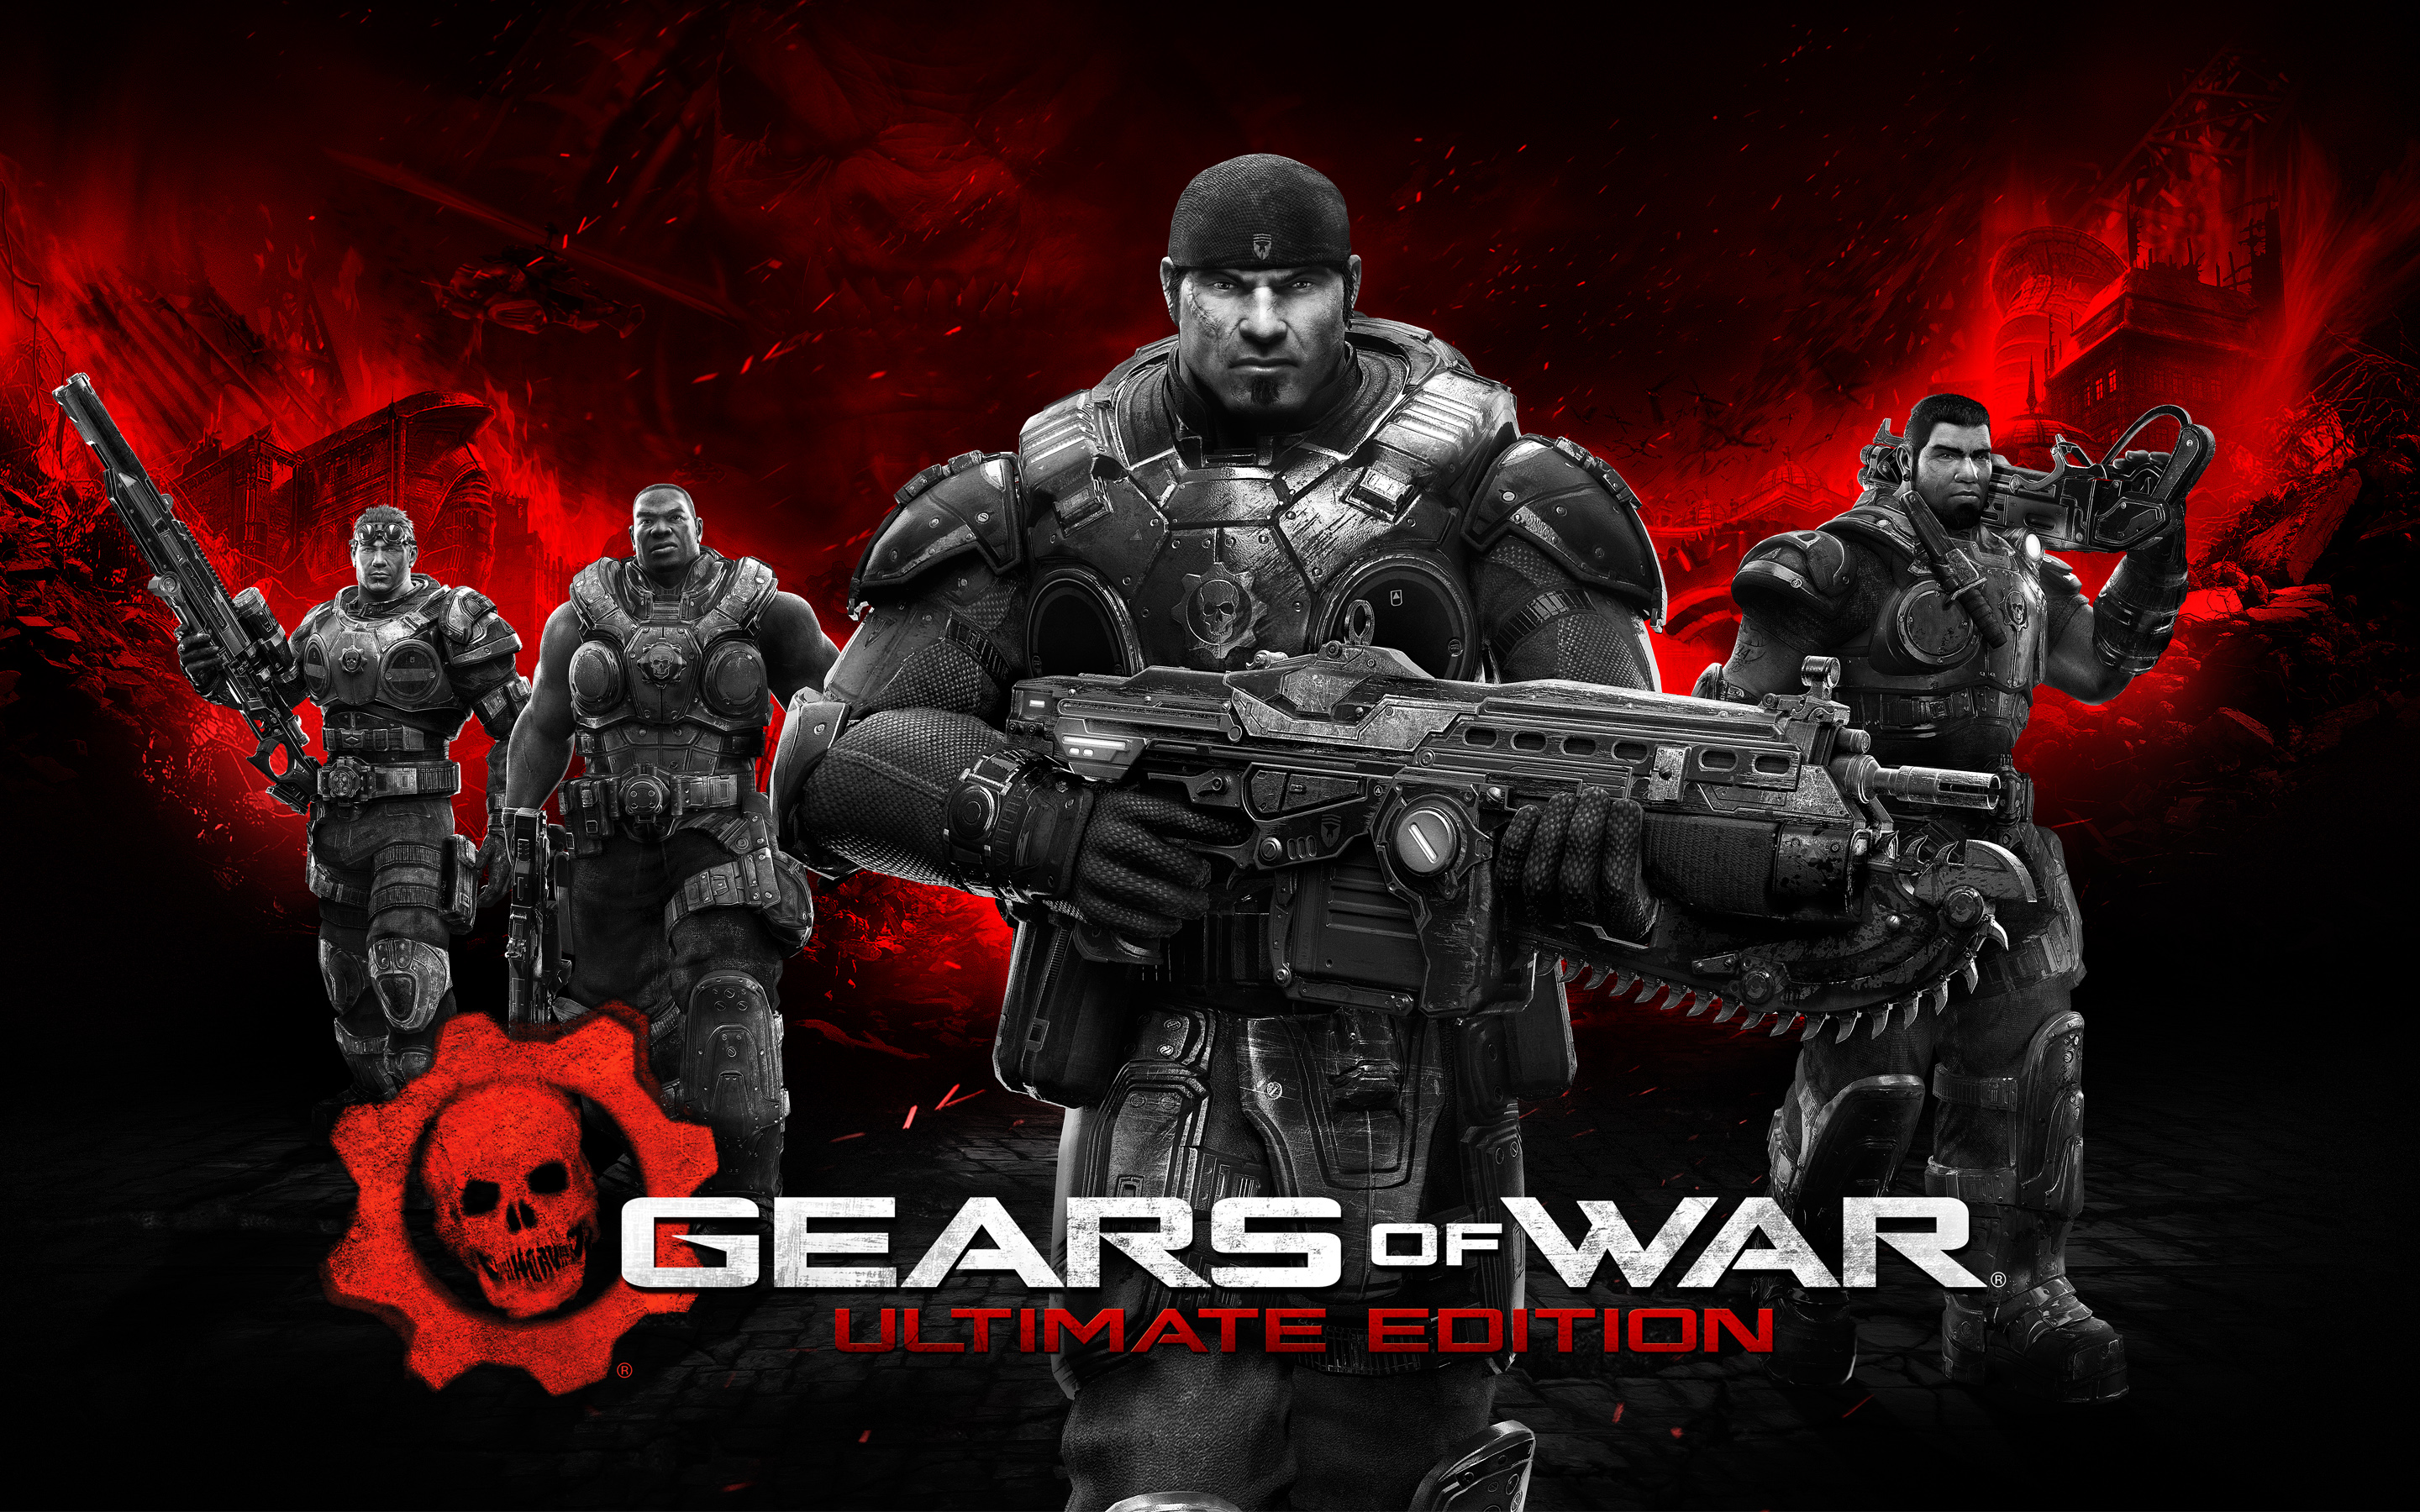 Gears Of War Ultimate Edition Wallpapers Wallpapers Hd